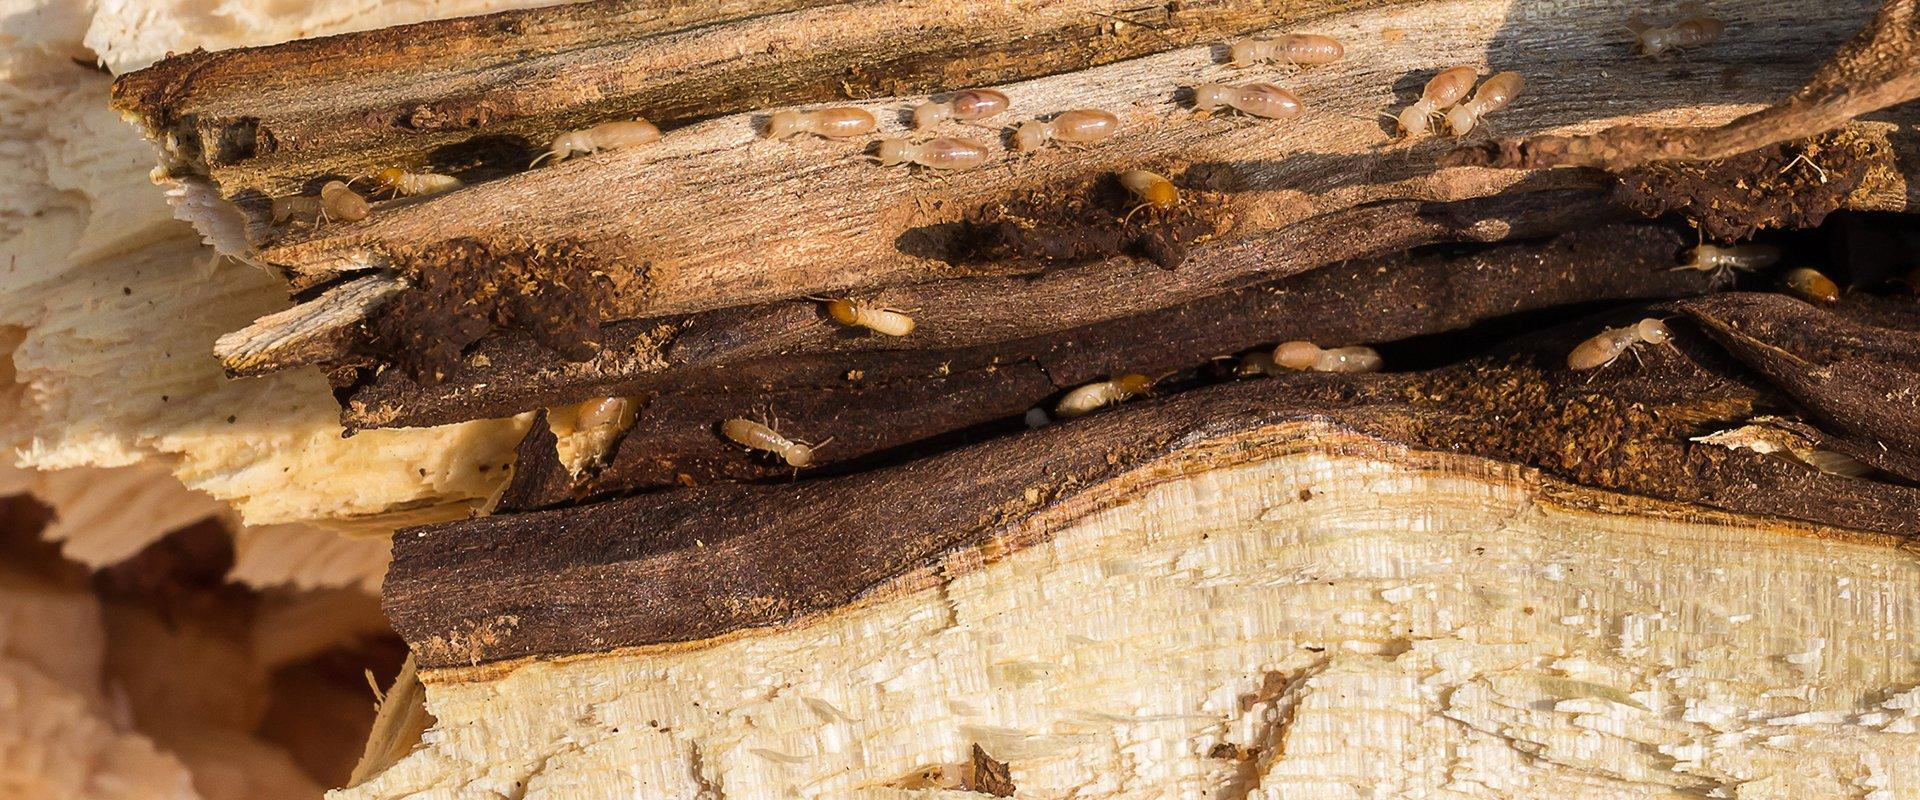 a termite infestation on a wooden structure outside of a home in fort worth texas